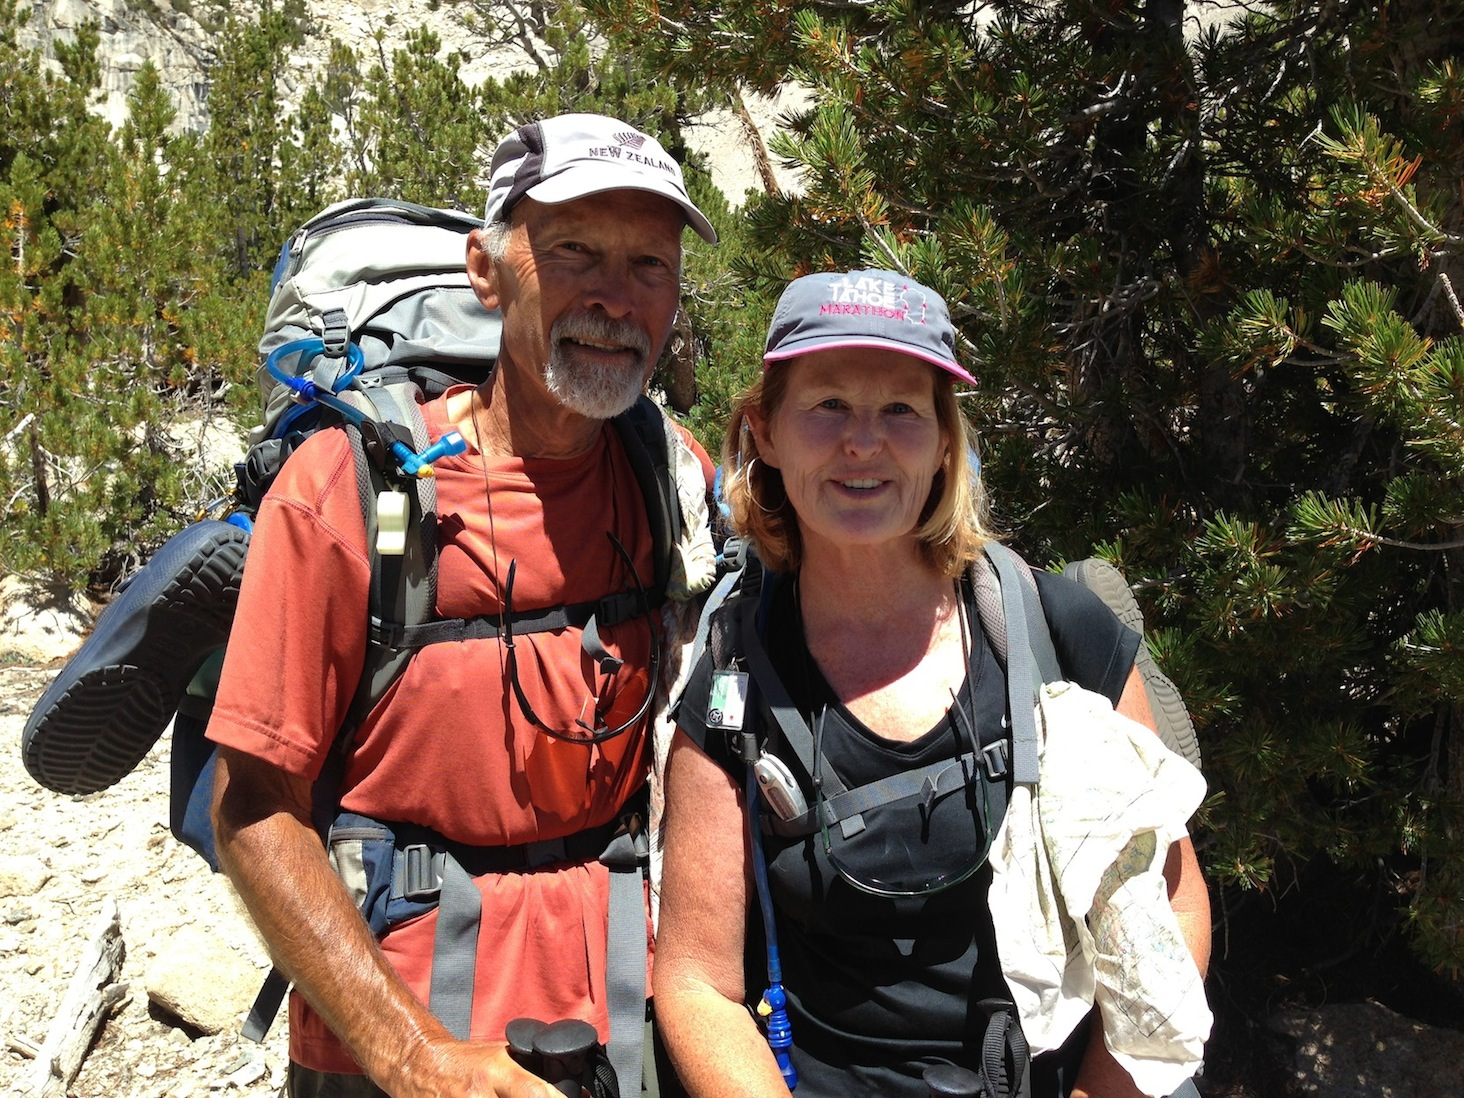 JMT hikers Jeff and Kathy from San Rafael look strong on Aug. 16 on their way up Kearsarge Pass and over Whitney.